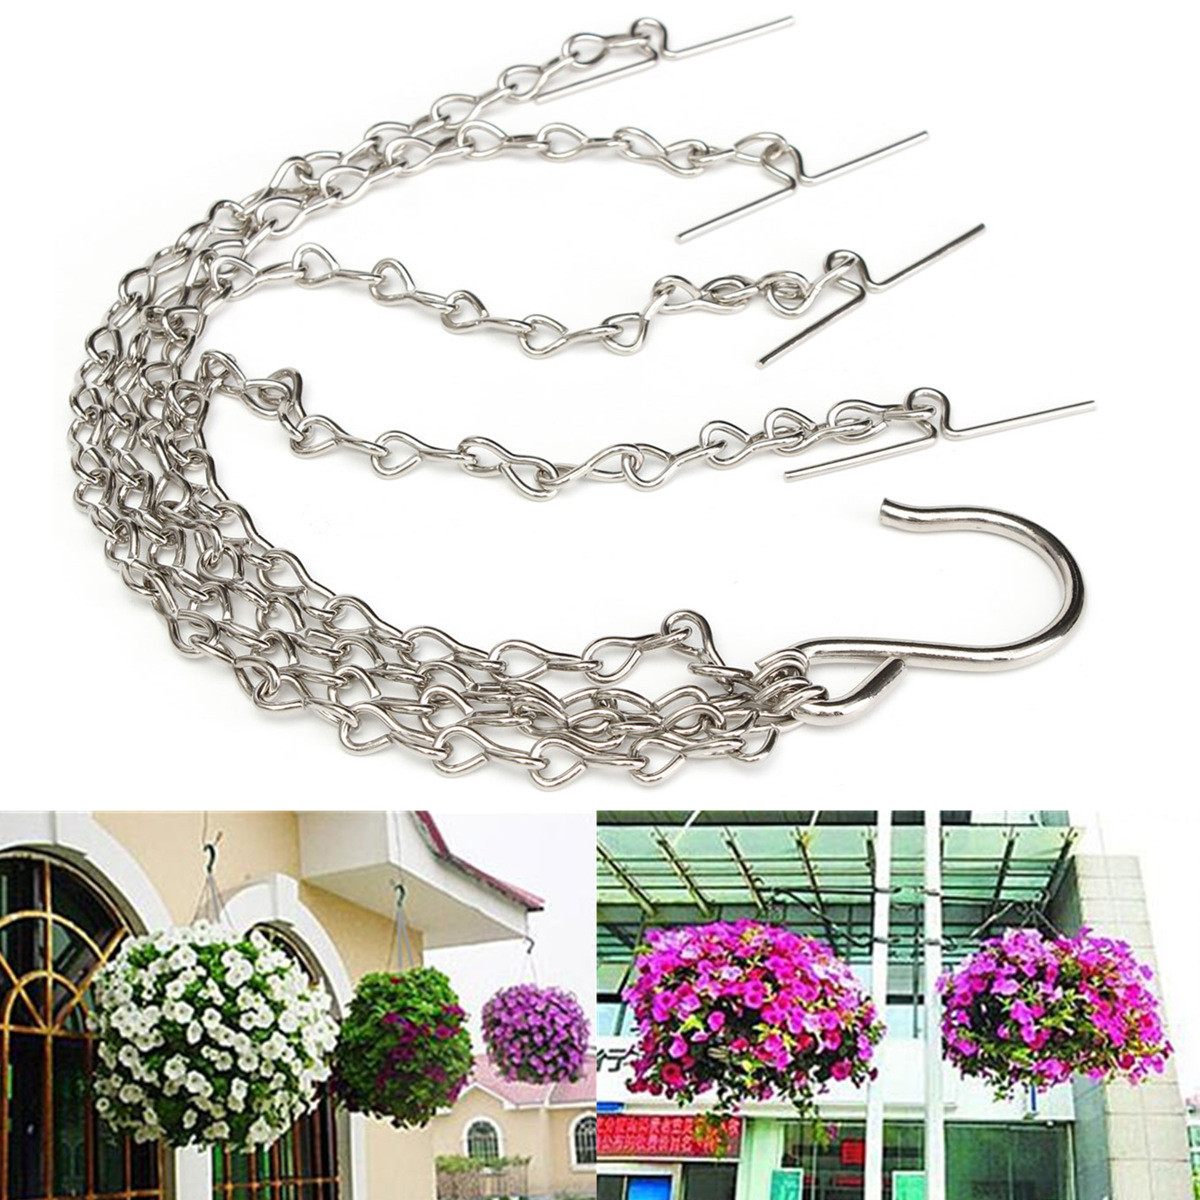 35cm replacement chain for flower shop hanging basket - Hanging baskets for balcony ...